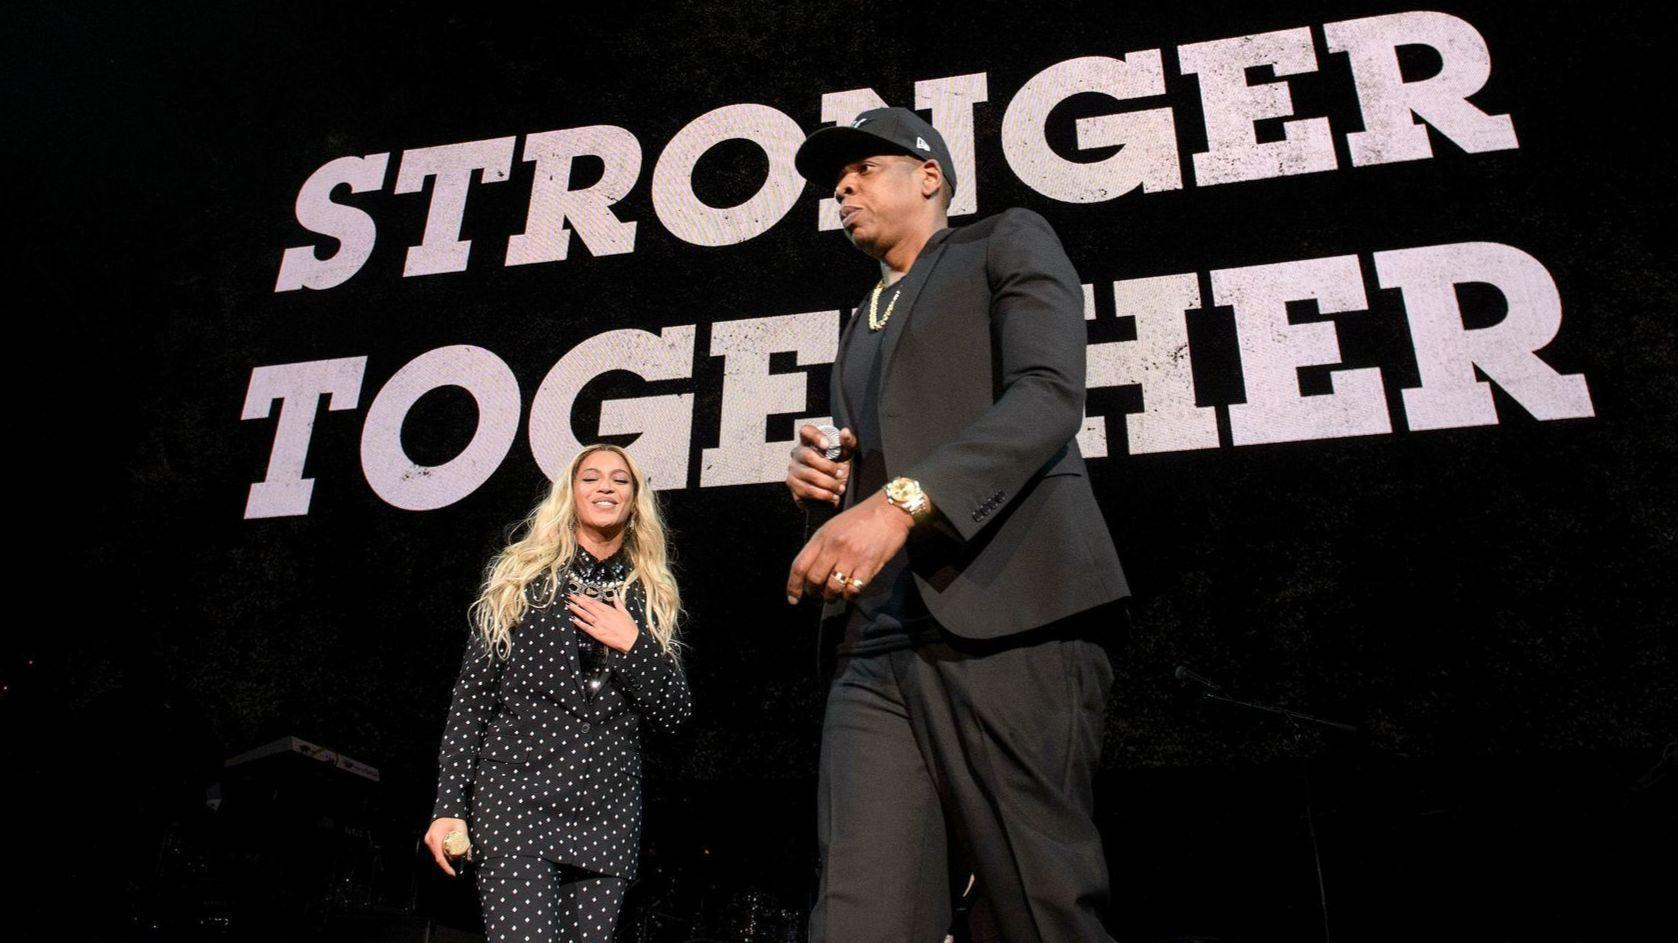 beyonce and jay z concert mixes hollywood cliches with musical drama chicago tribune. Black Bedroom Furniture Sets. Home Design Ideas